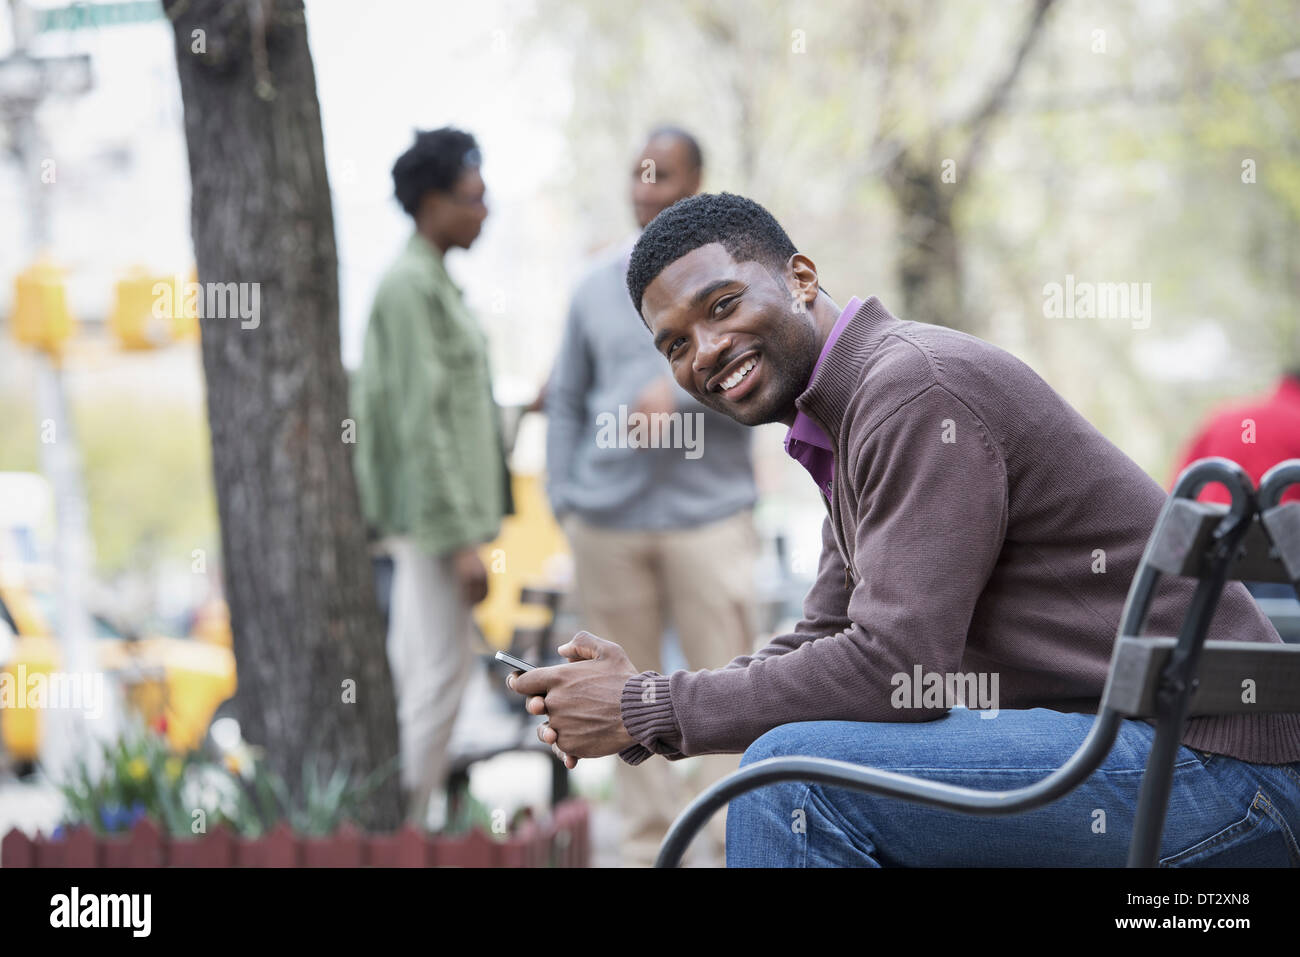 A young man on a bench and a group in the background - Stock Image